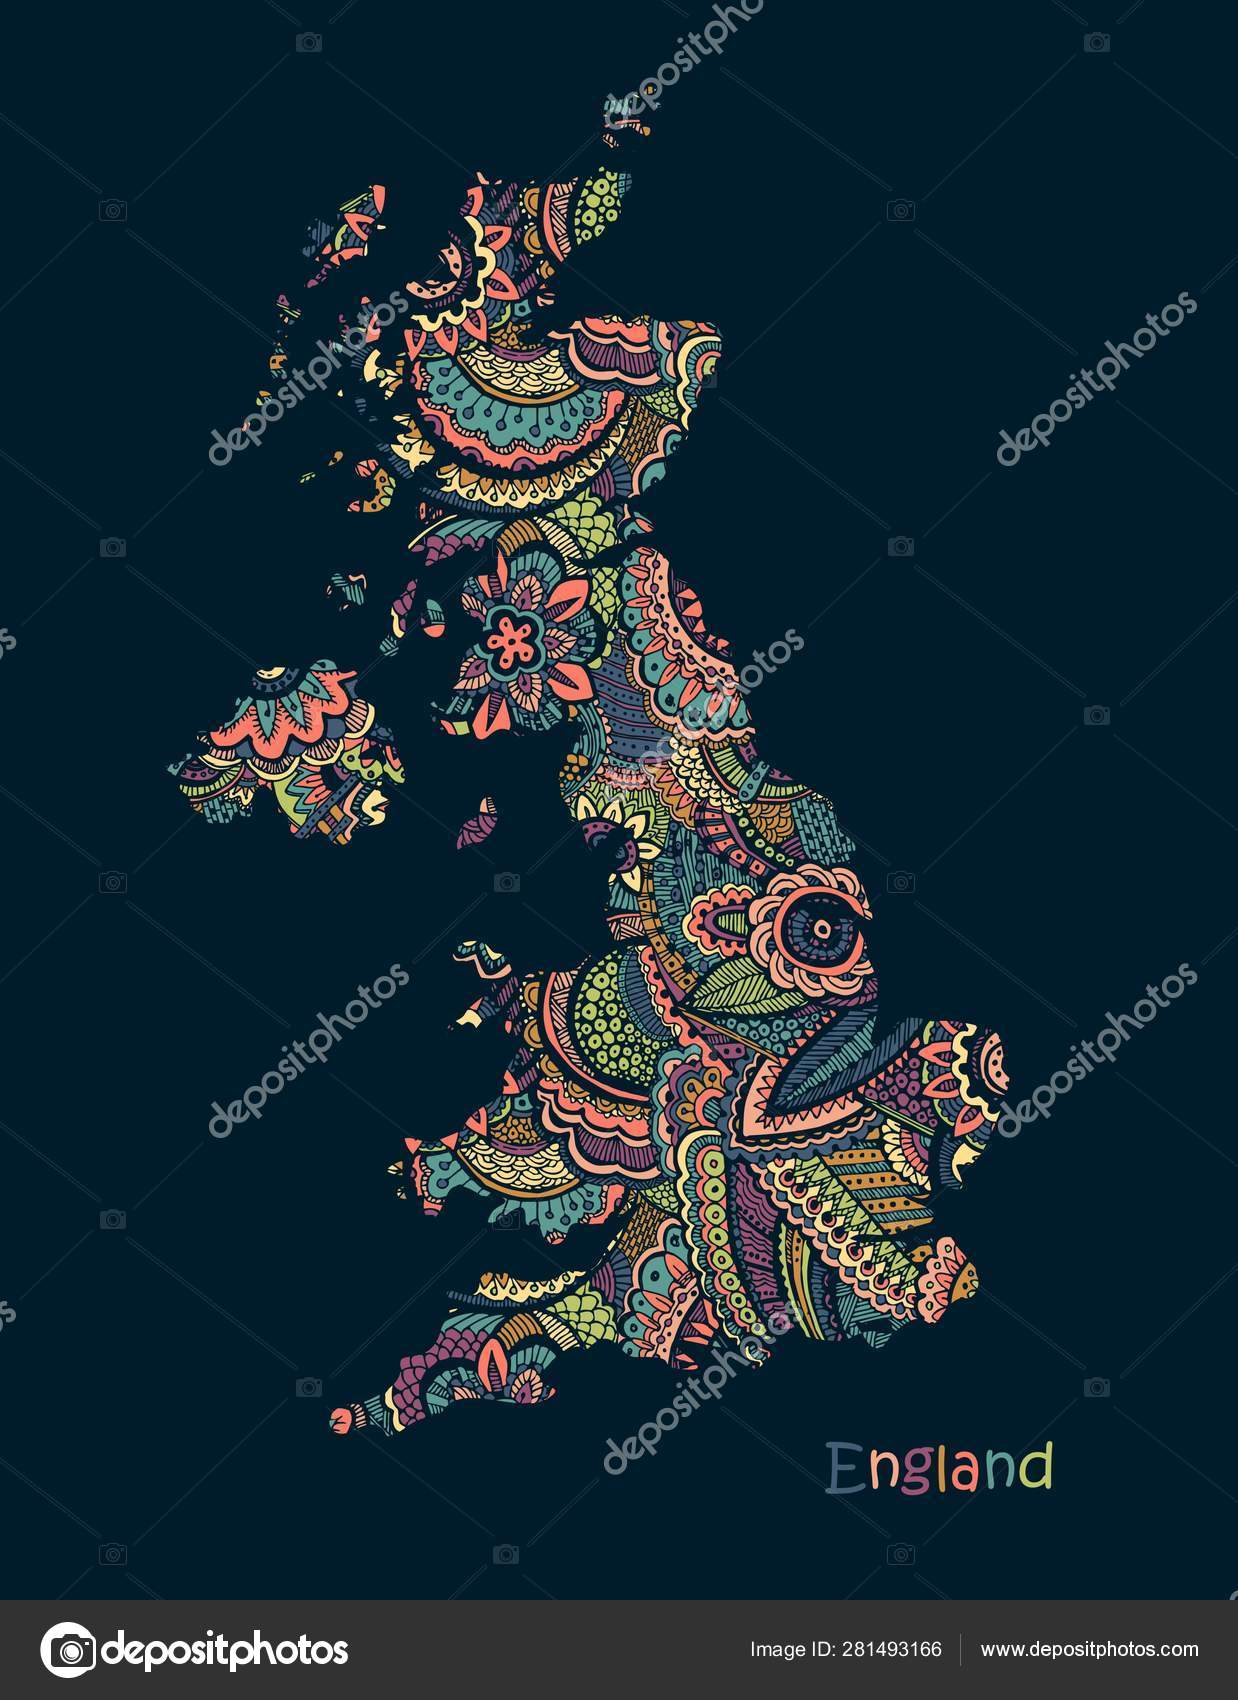 Map Of England Drawing.Textured Vector Map Of England Illustration In Hand Drawing Doodle